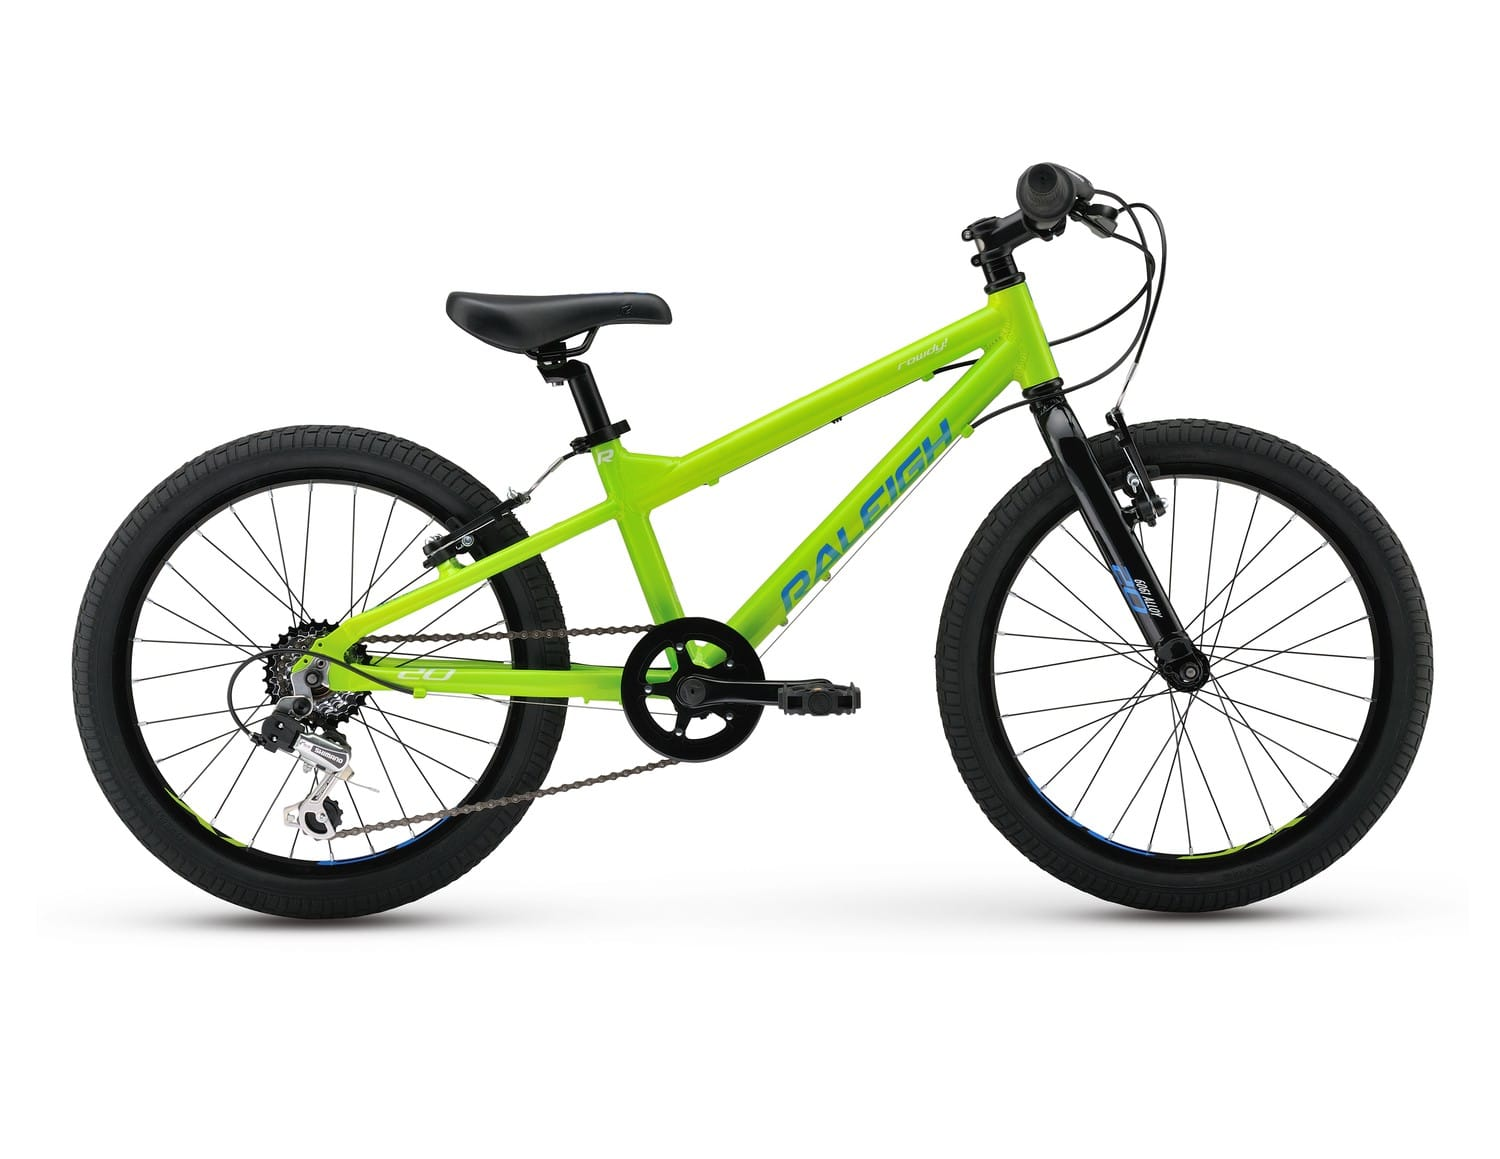 2017 Raleigh Rowdy 20 Boys 20 Green Green Mountain Bikes